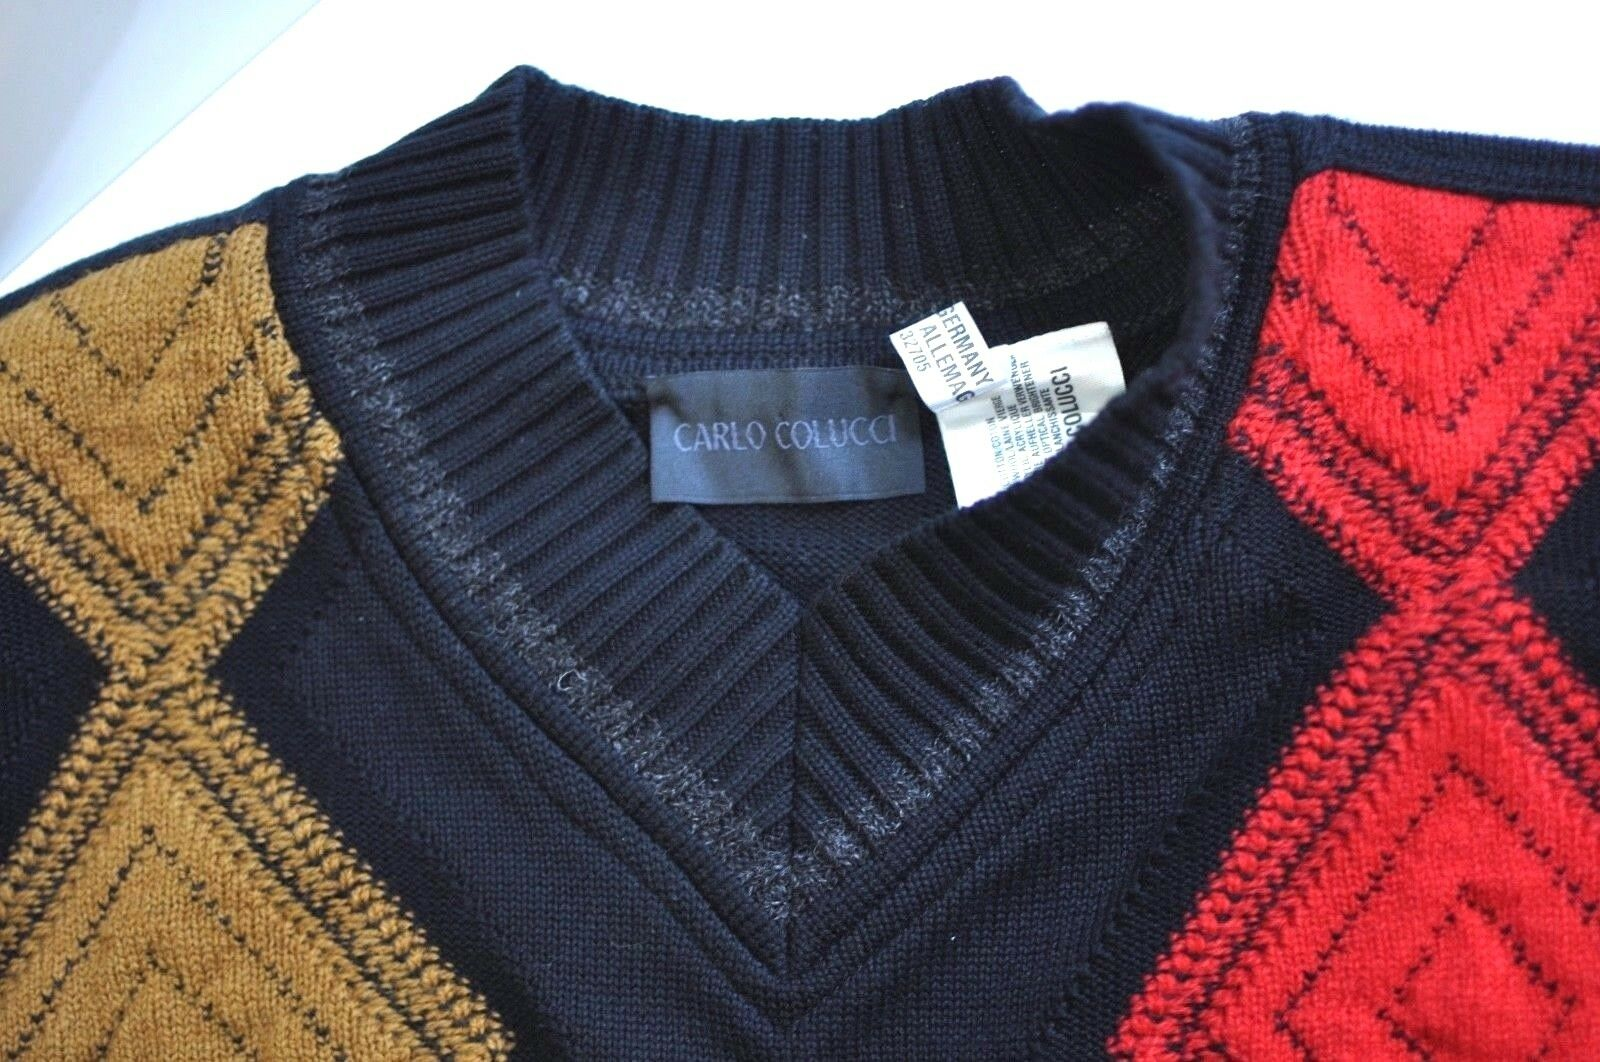 Carlo Colucci Mens sweater made in Germany size 52